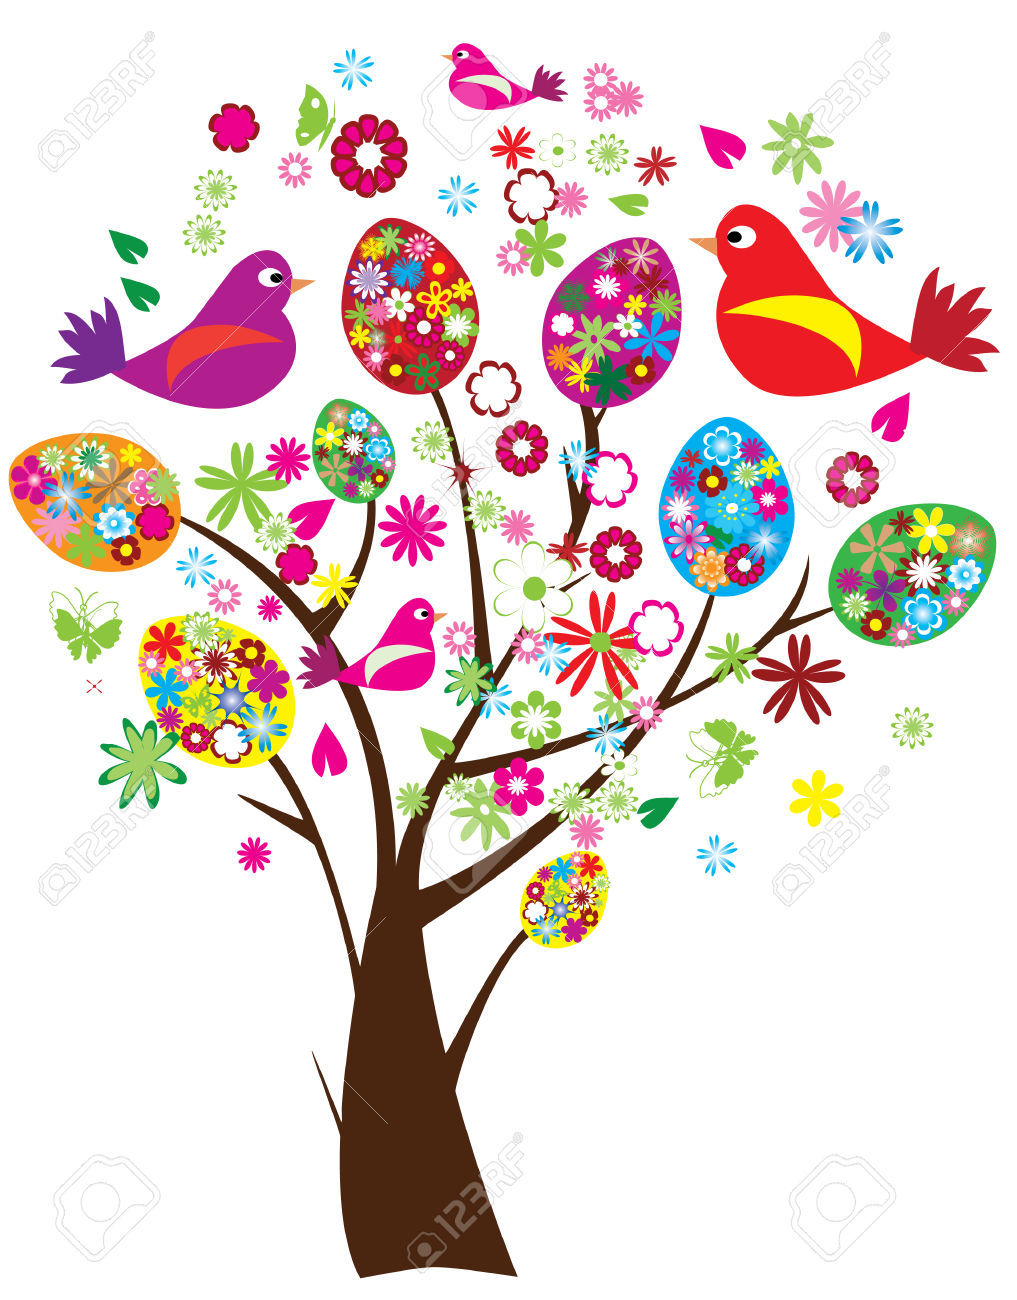 Easter egg tree clipart banner transparent stock Vector Easter Tree With Floral Eggs And Birds Royalty Free ... banner transparent stock